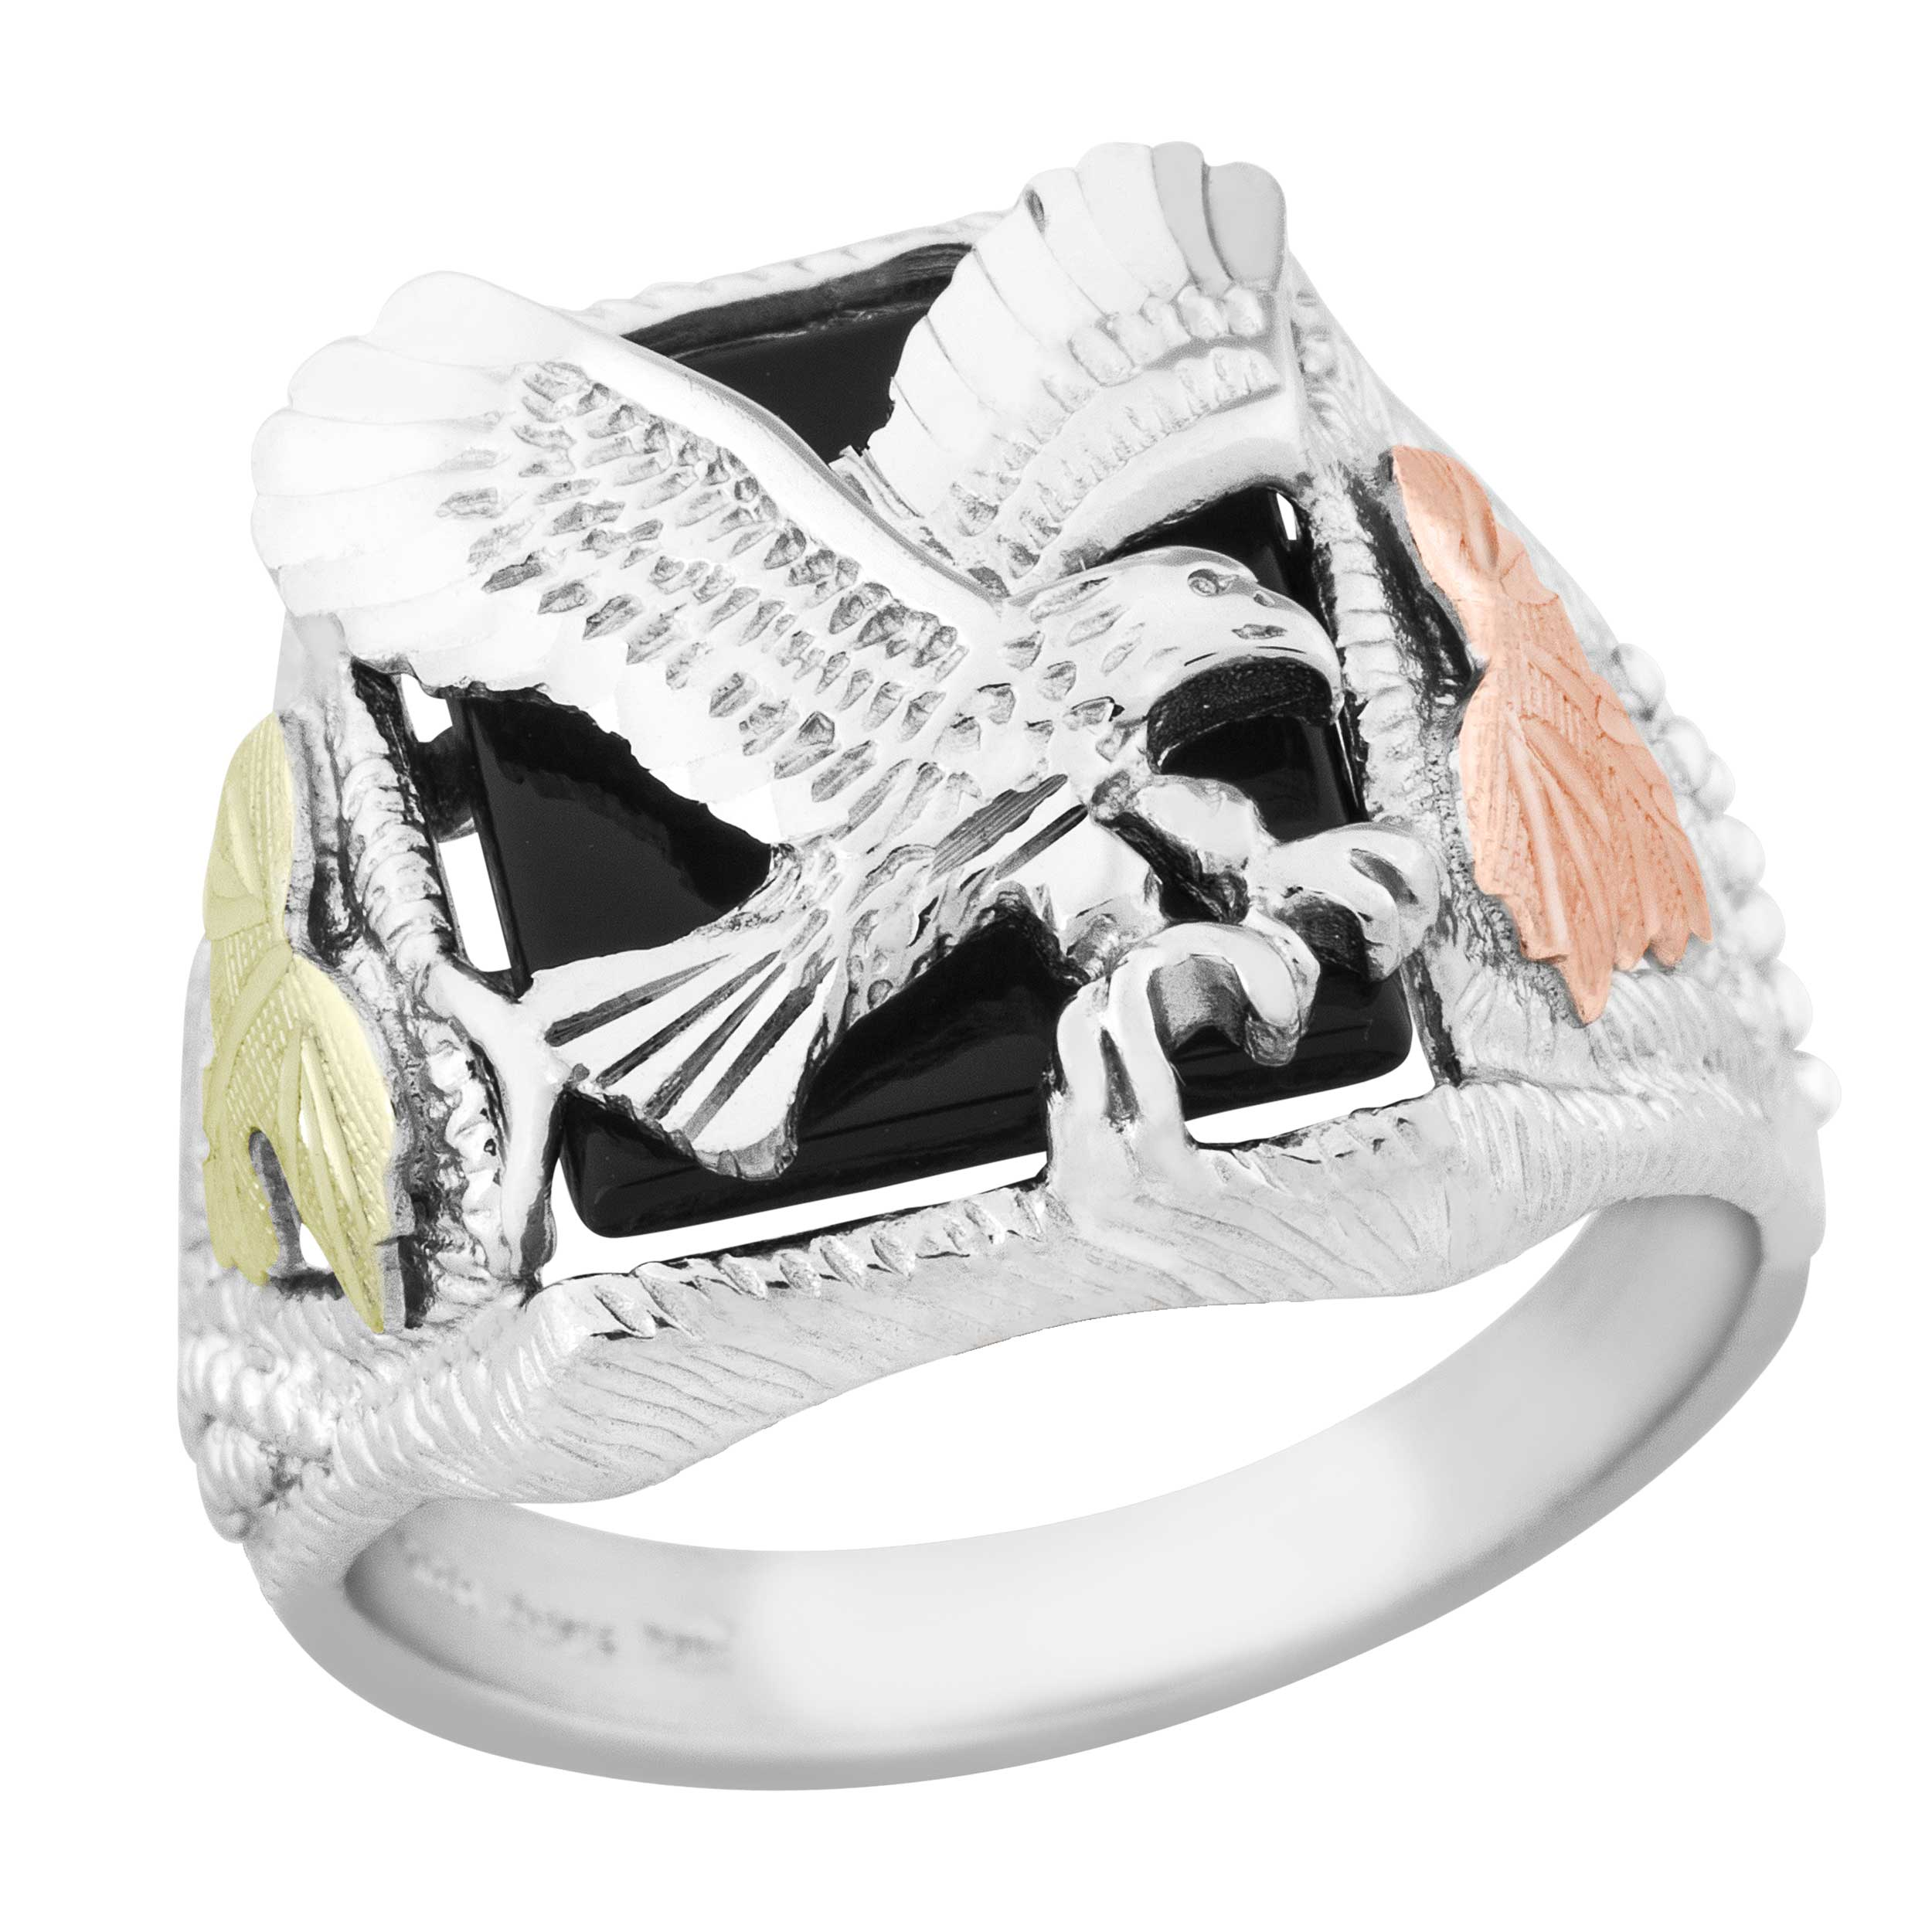 silver sterling men main ring rings eagle s gold with jewellery black hills american for style boomer motif